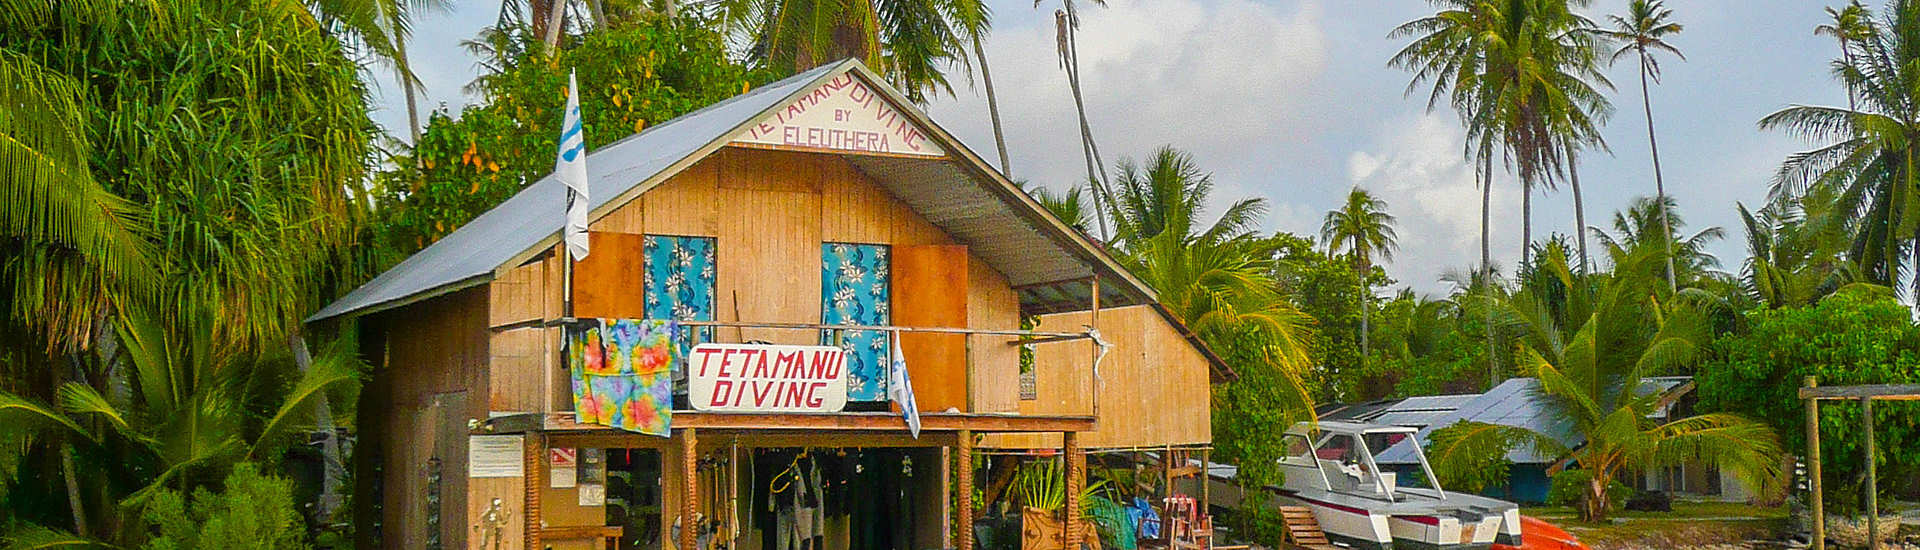 Tetamanu Diving Club – Süd Fakarava